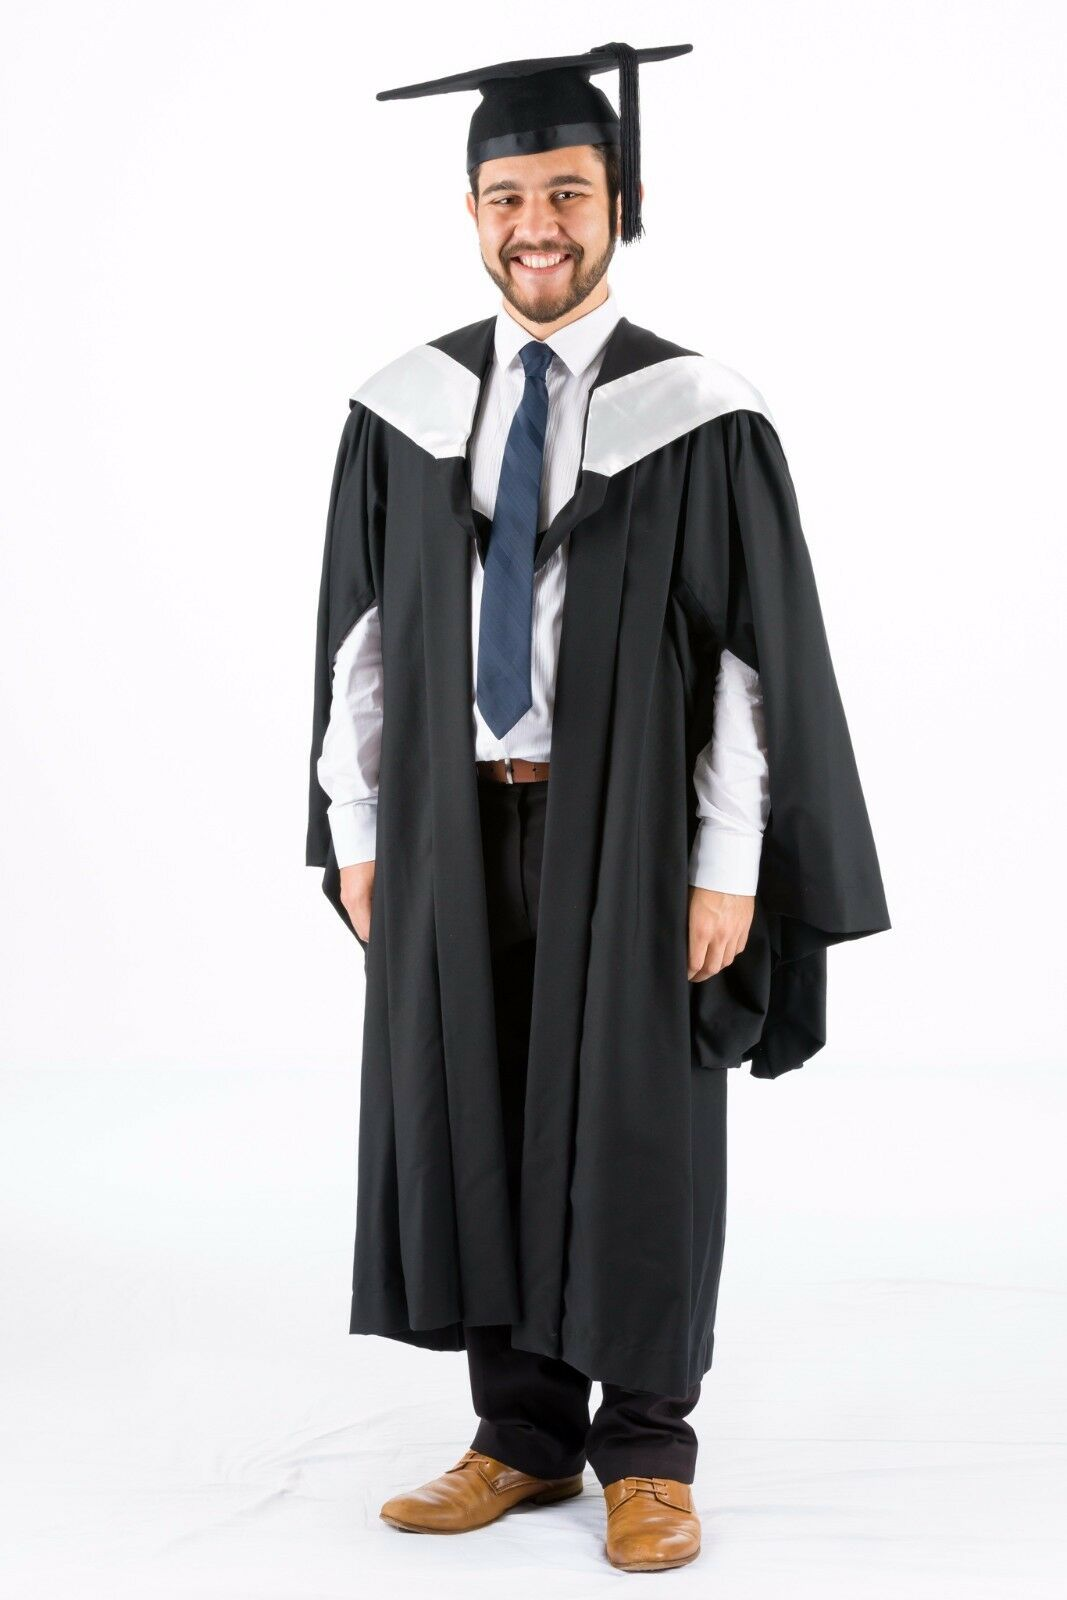 Bachelor Hood Pearl White UQ University of Queensland Graduation ...